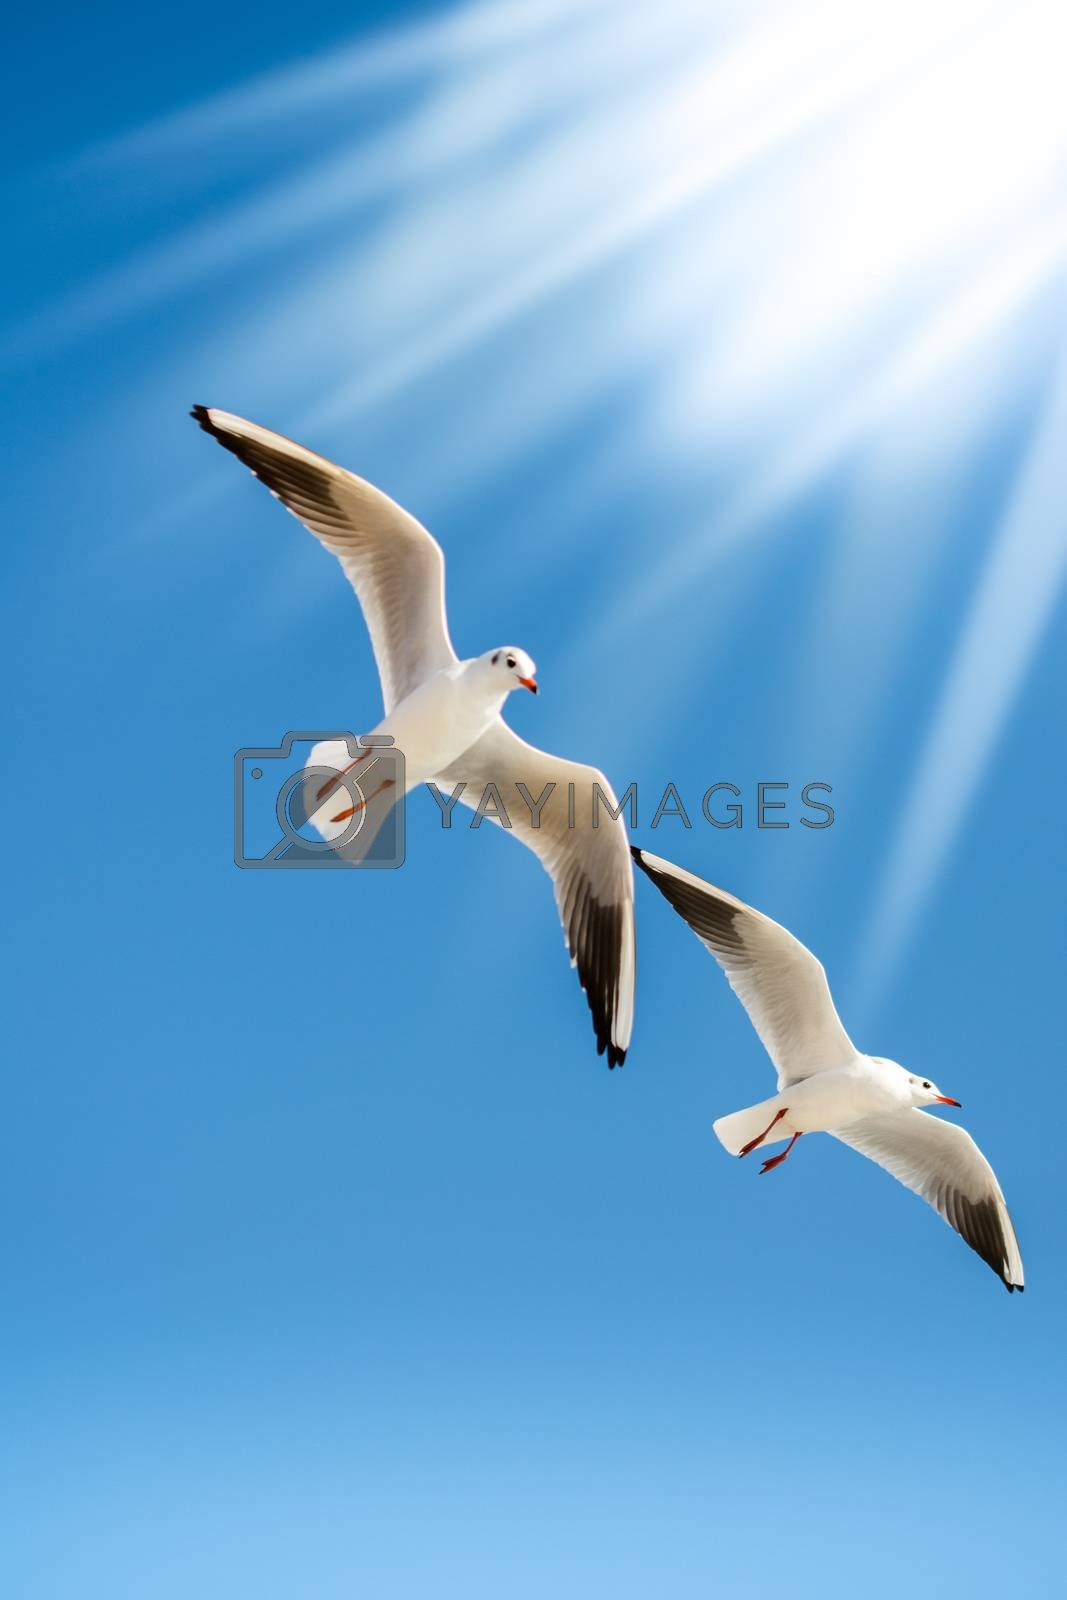 Pair of seagulls flying in the sky background